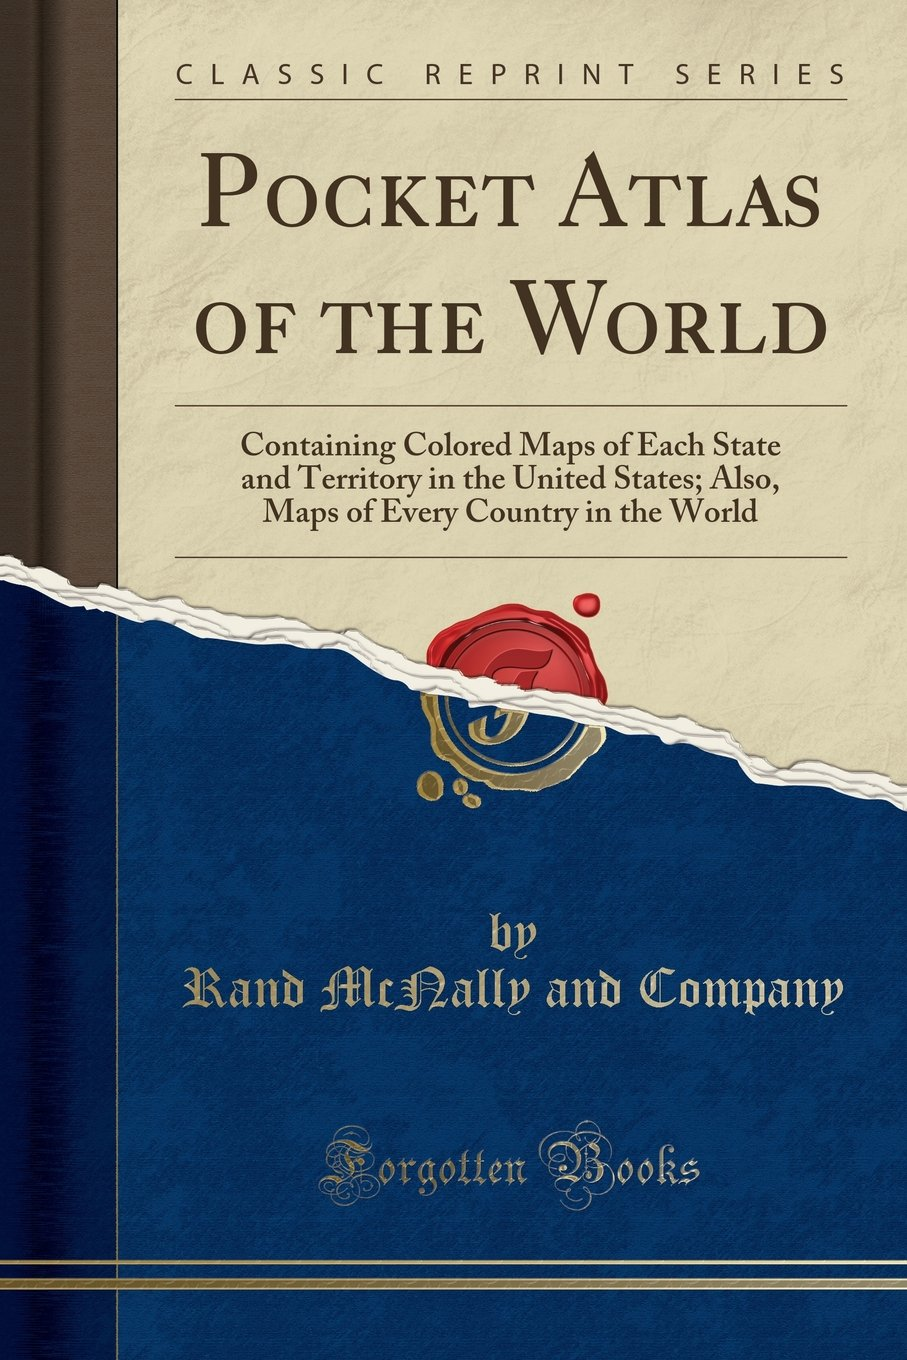 Pocket Atlas of the World Containing Colored Maps of Each State and